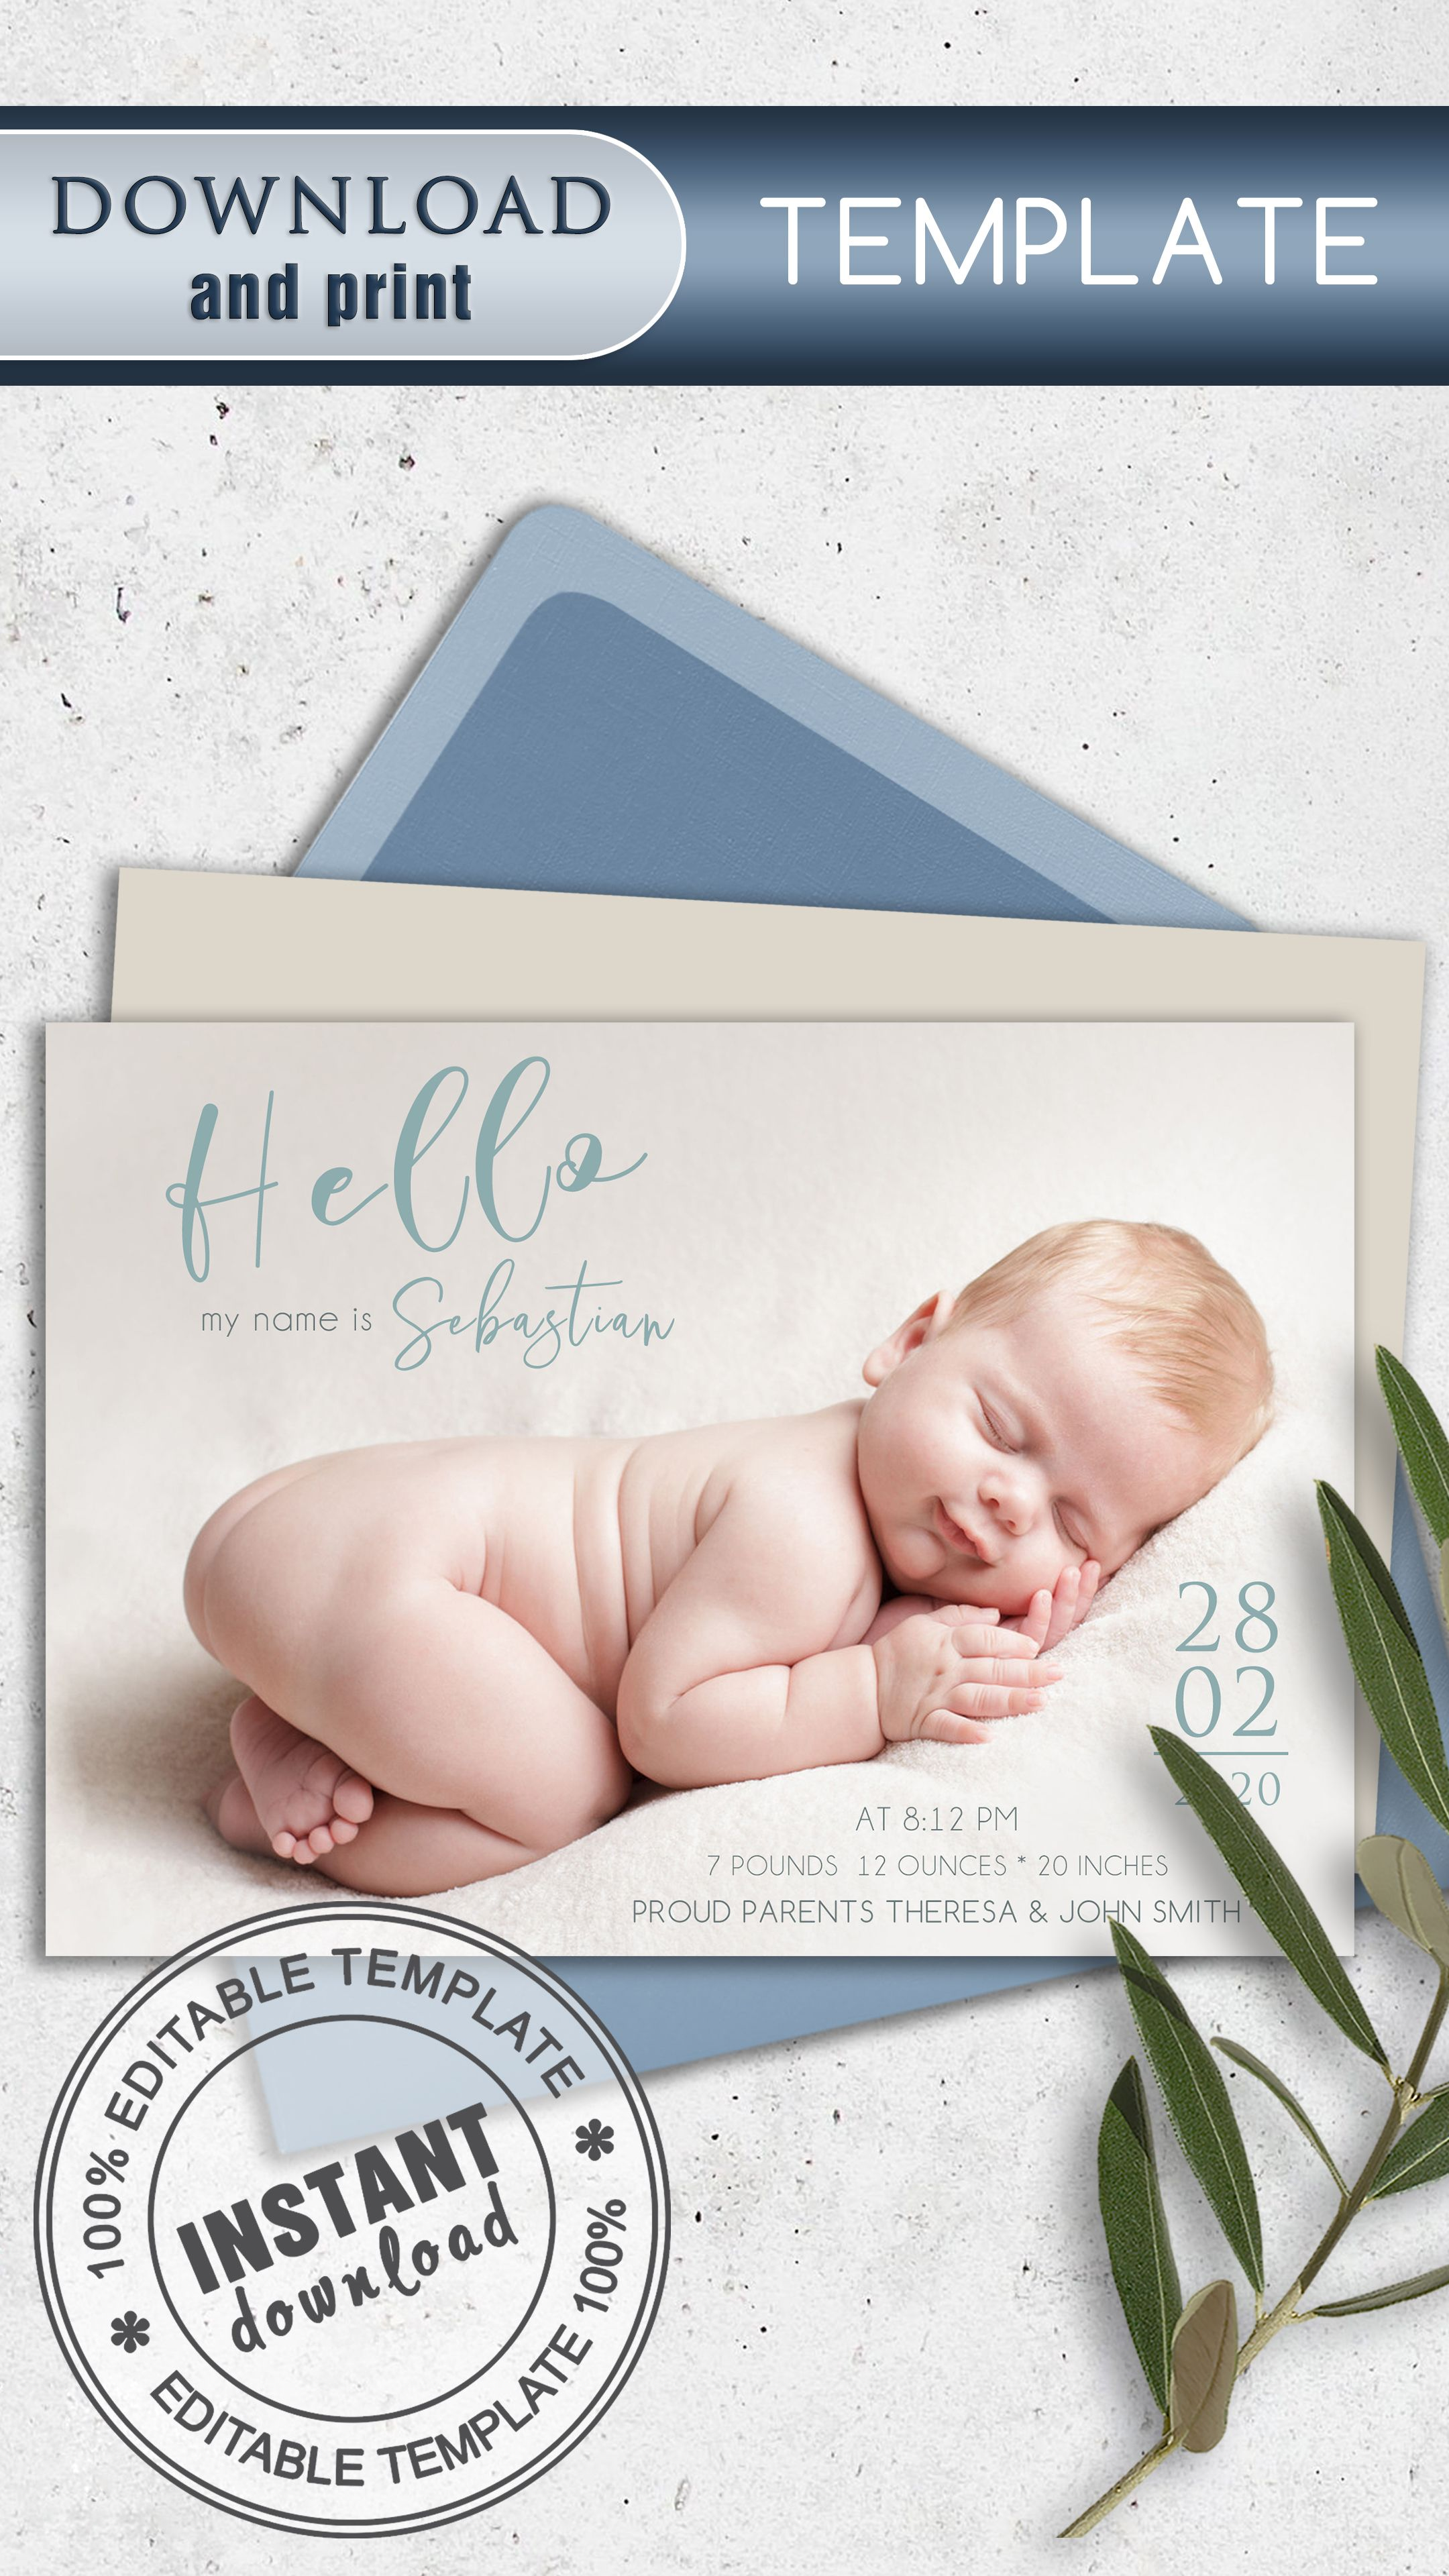 Birth Announcement Template Baby Announcement Editable Birth Announcement Baby Birth Card Personalized Newborn Card Template In 2020 Baby Announcement Birth Announcement Template Baby Announcement Cards